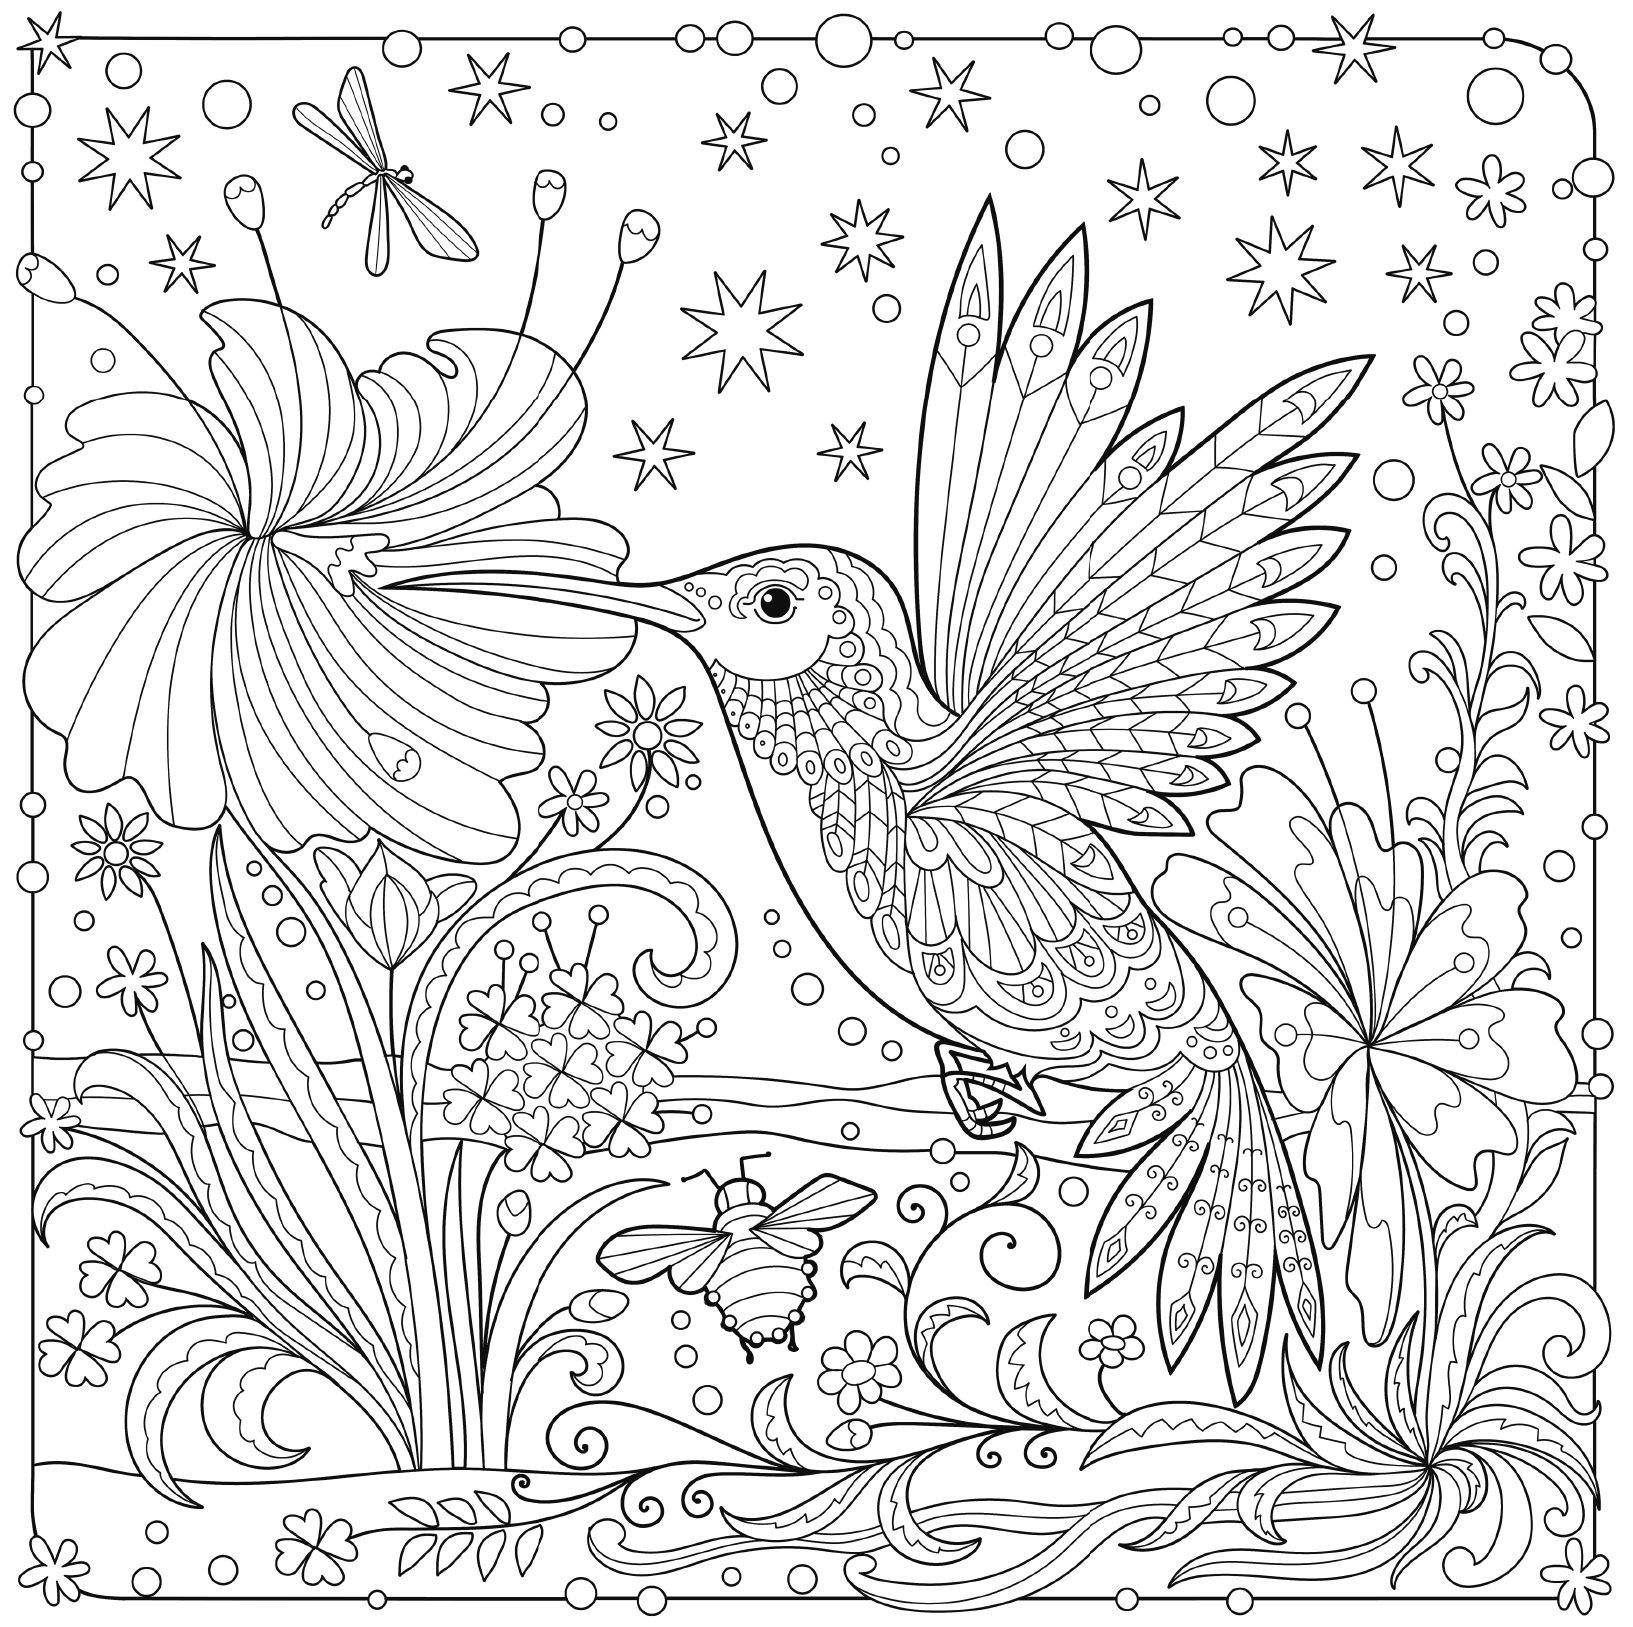 hummingbird colouring page